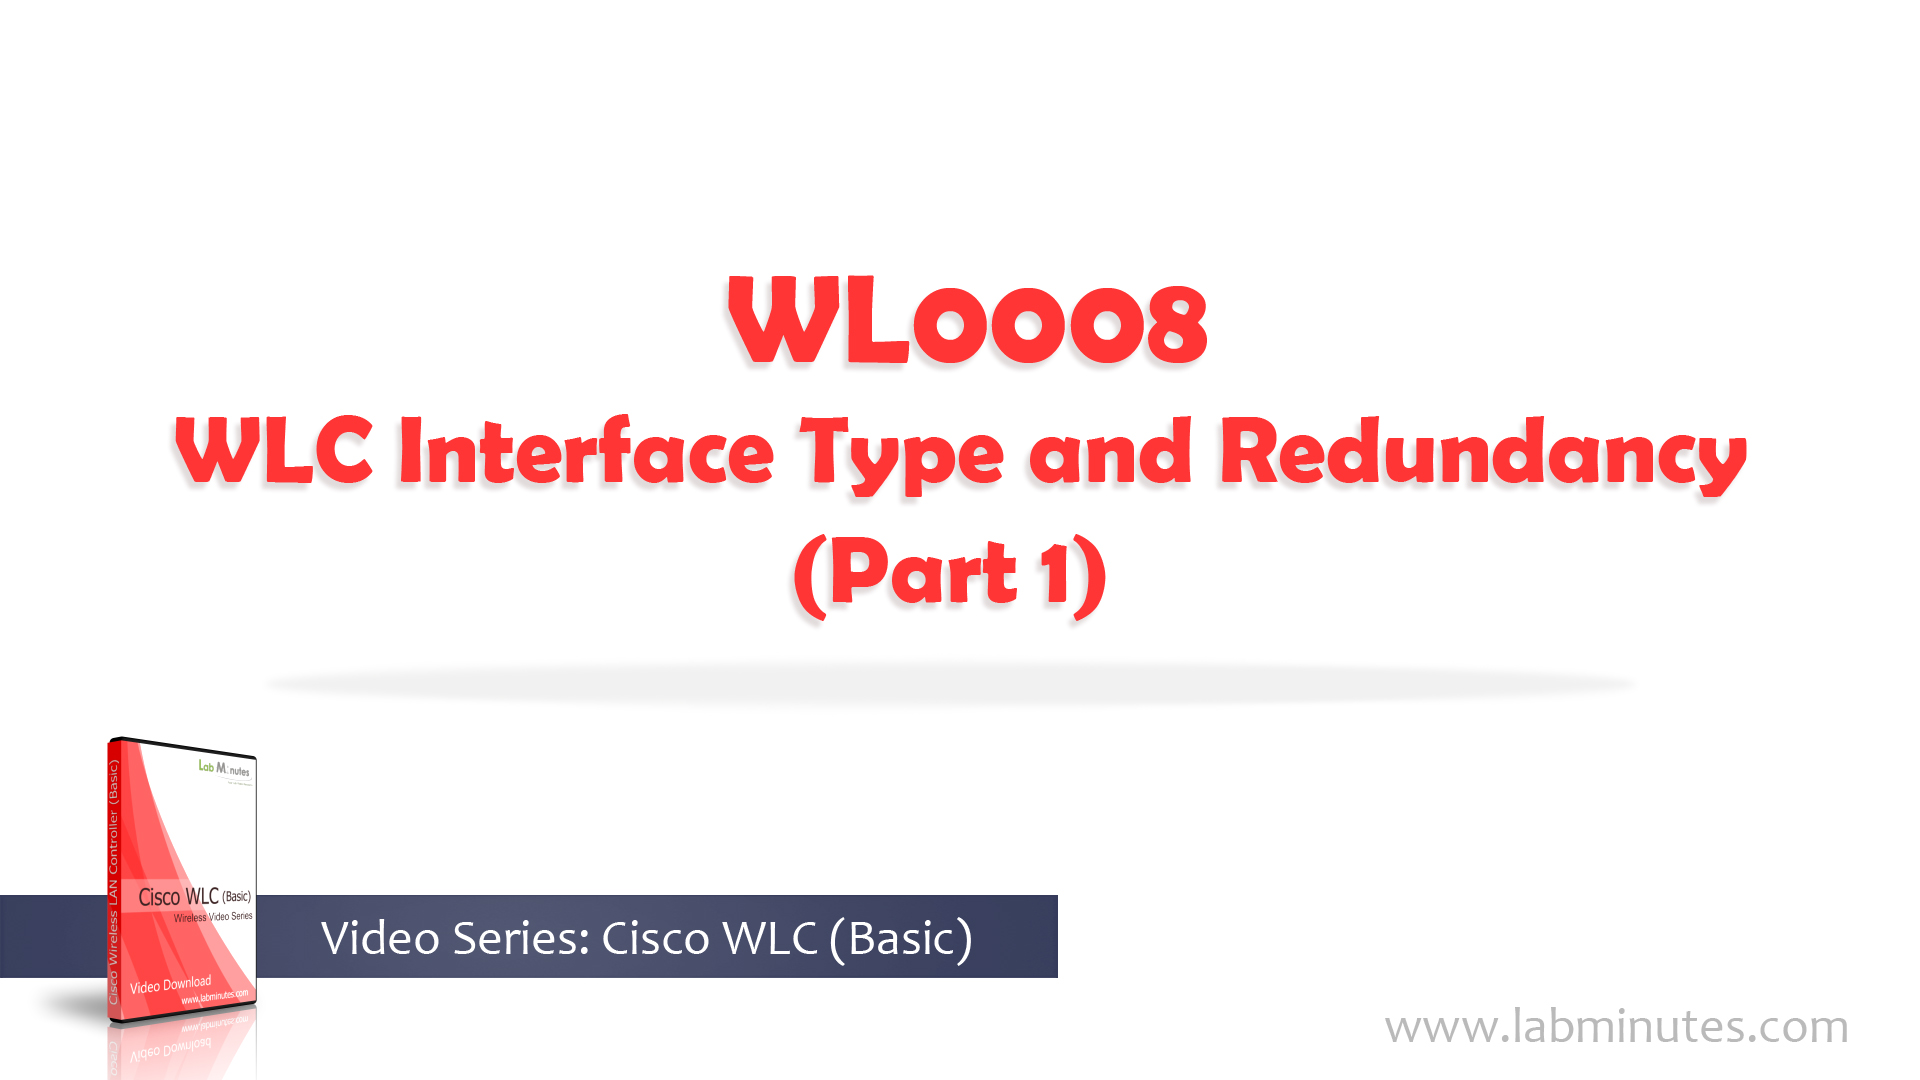 How to Configure WLC Interface and Redundancy (Part 1)